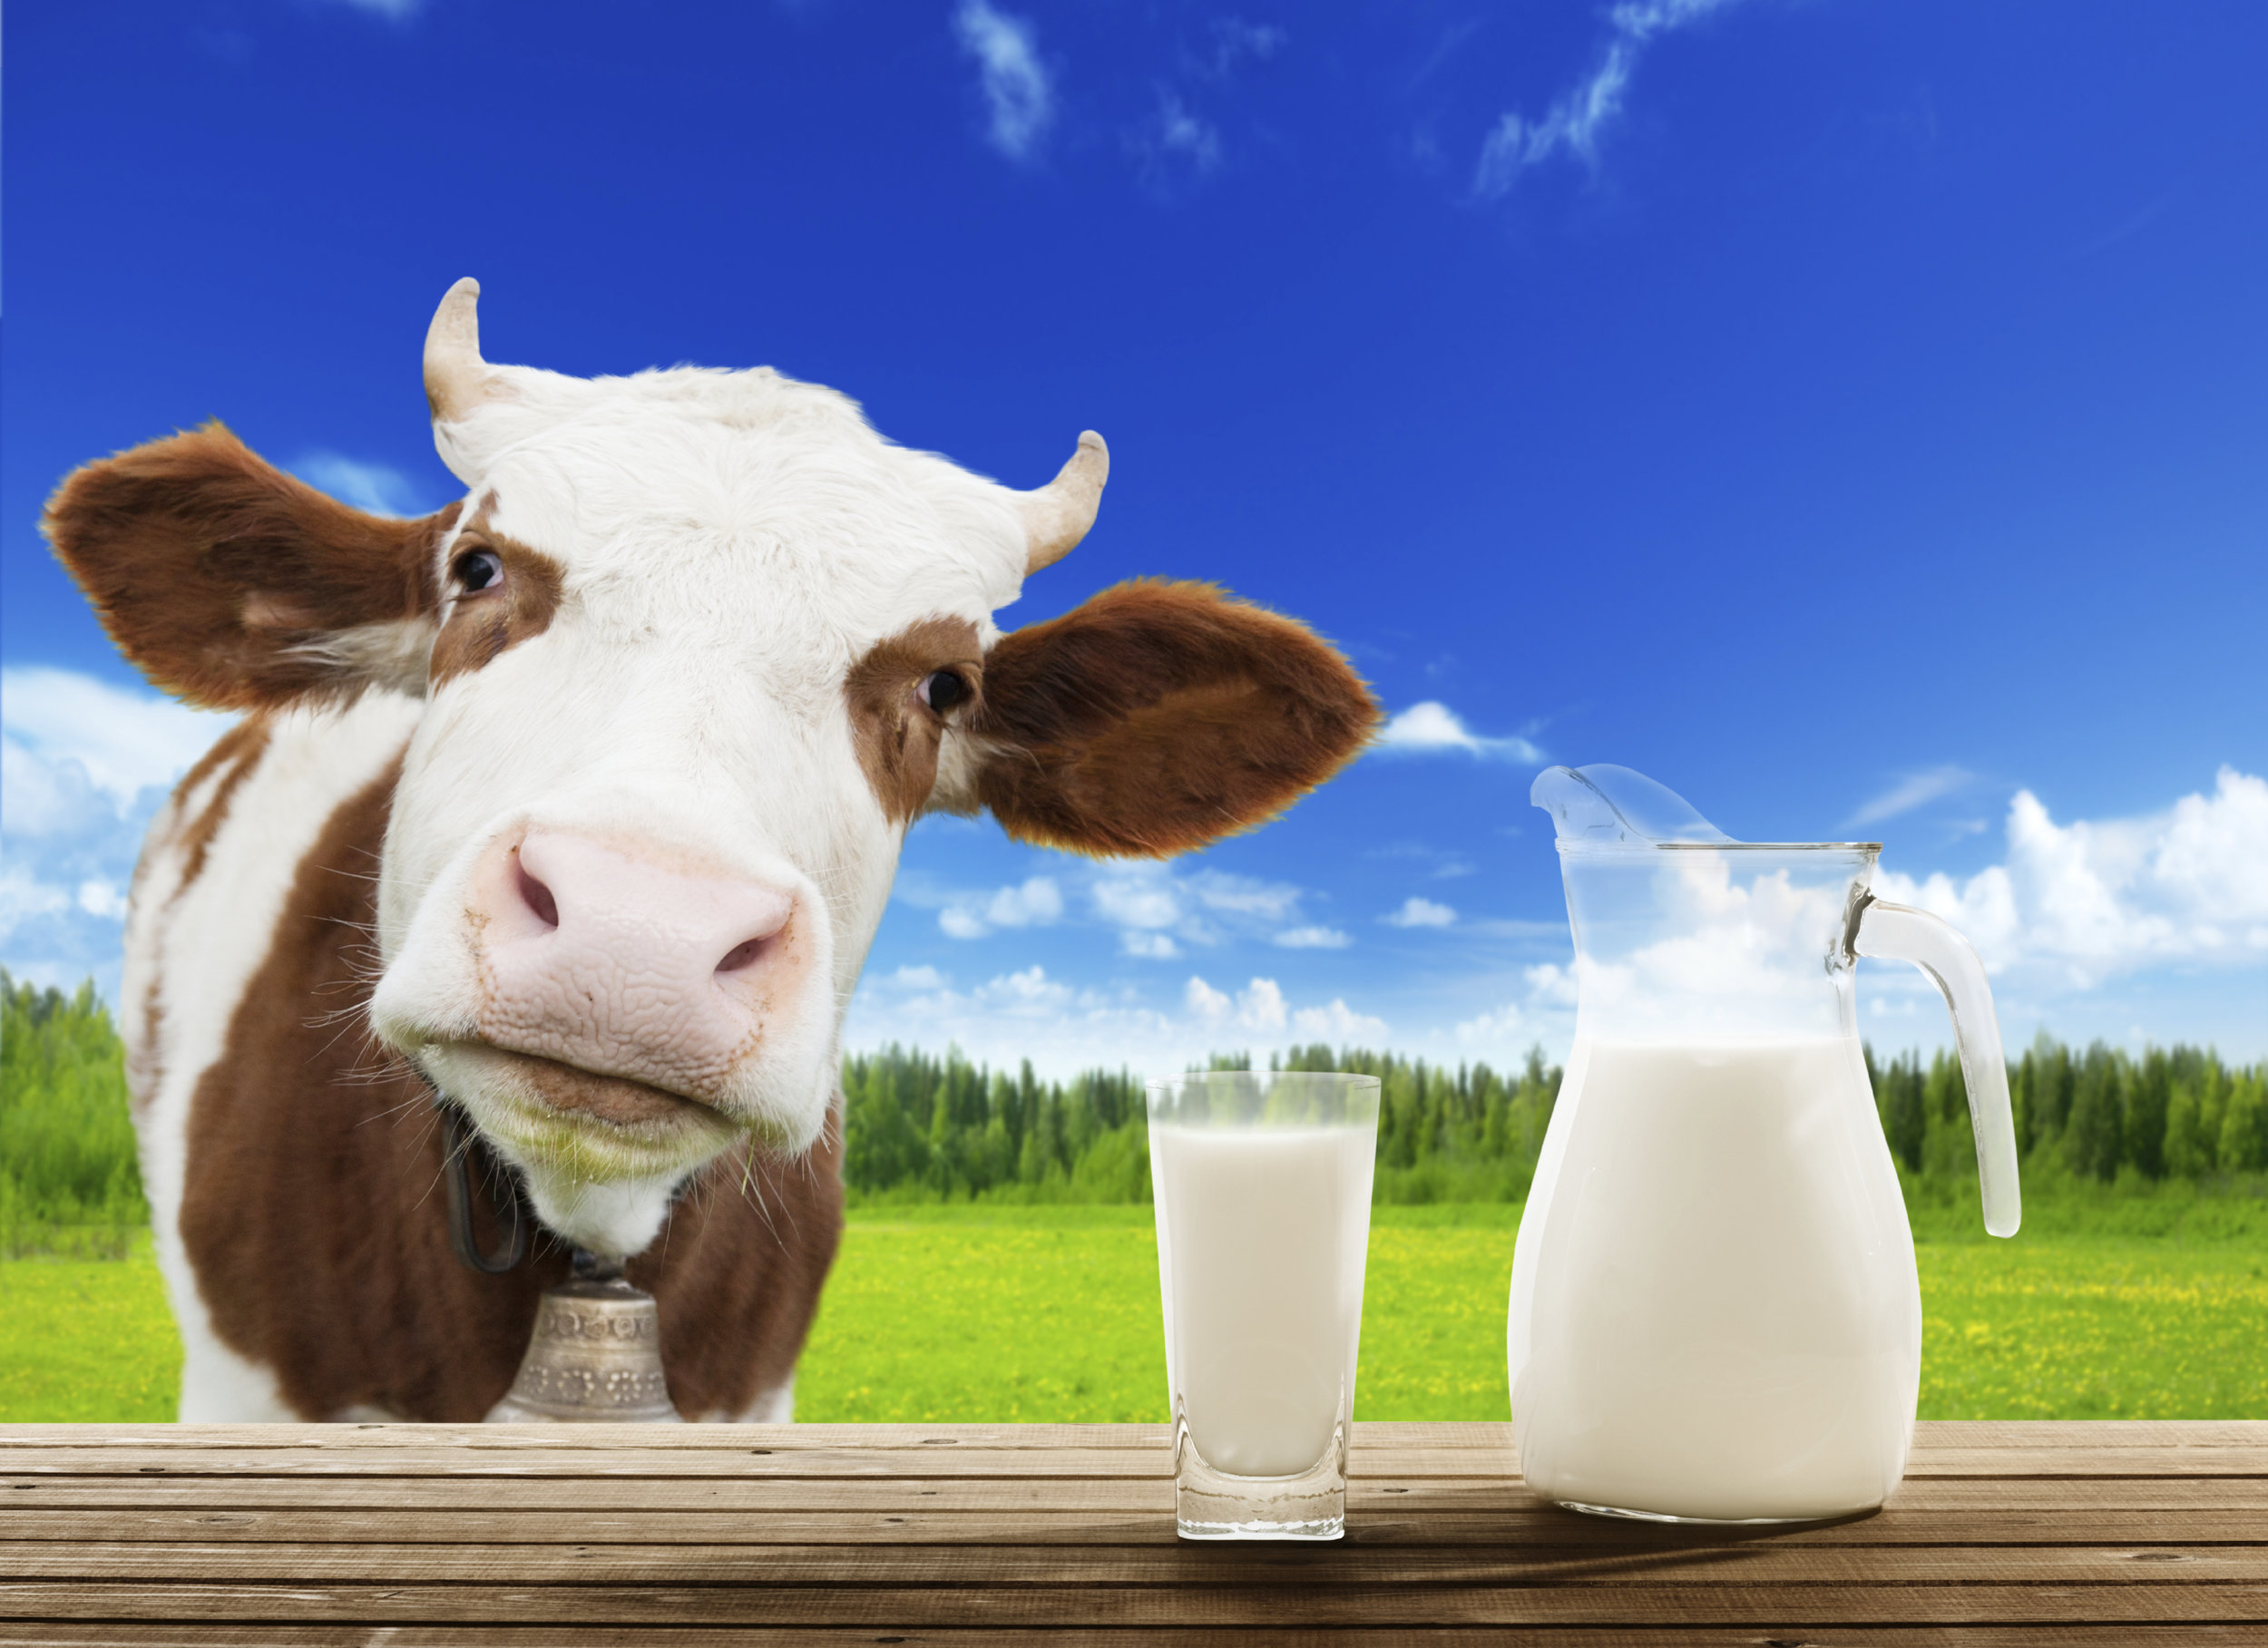 - This article discusses why milk should be considered as a primary sports beverage.https://www.progressivedairy.com/news/industry-news/milk-the-superior-product-with-inferior-marketing